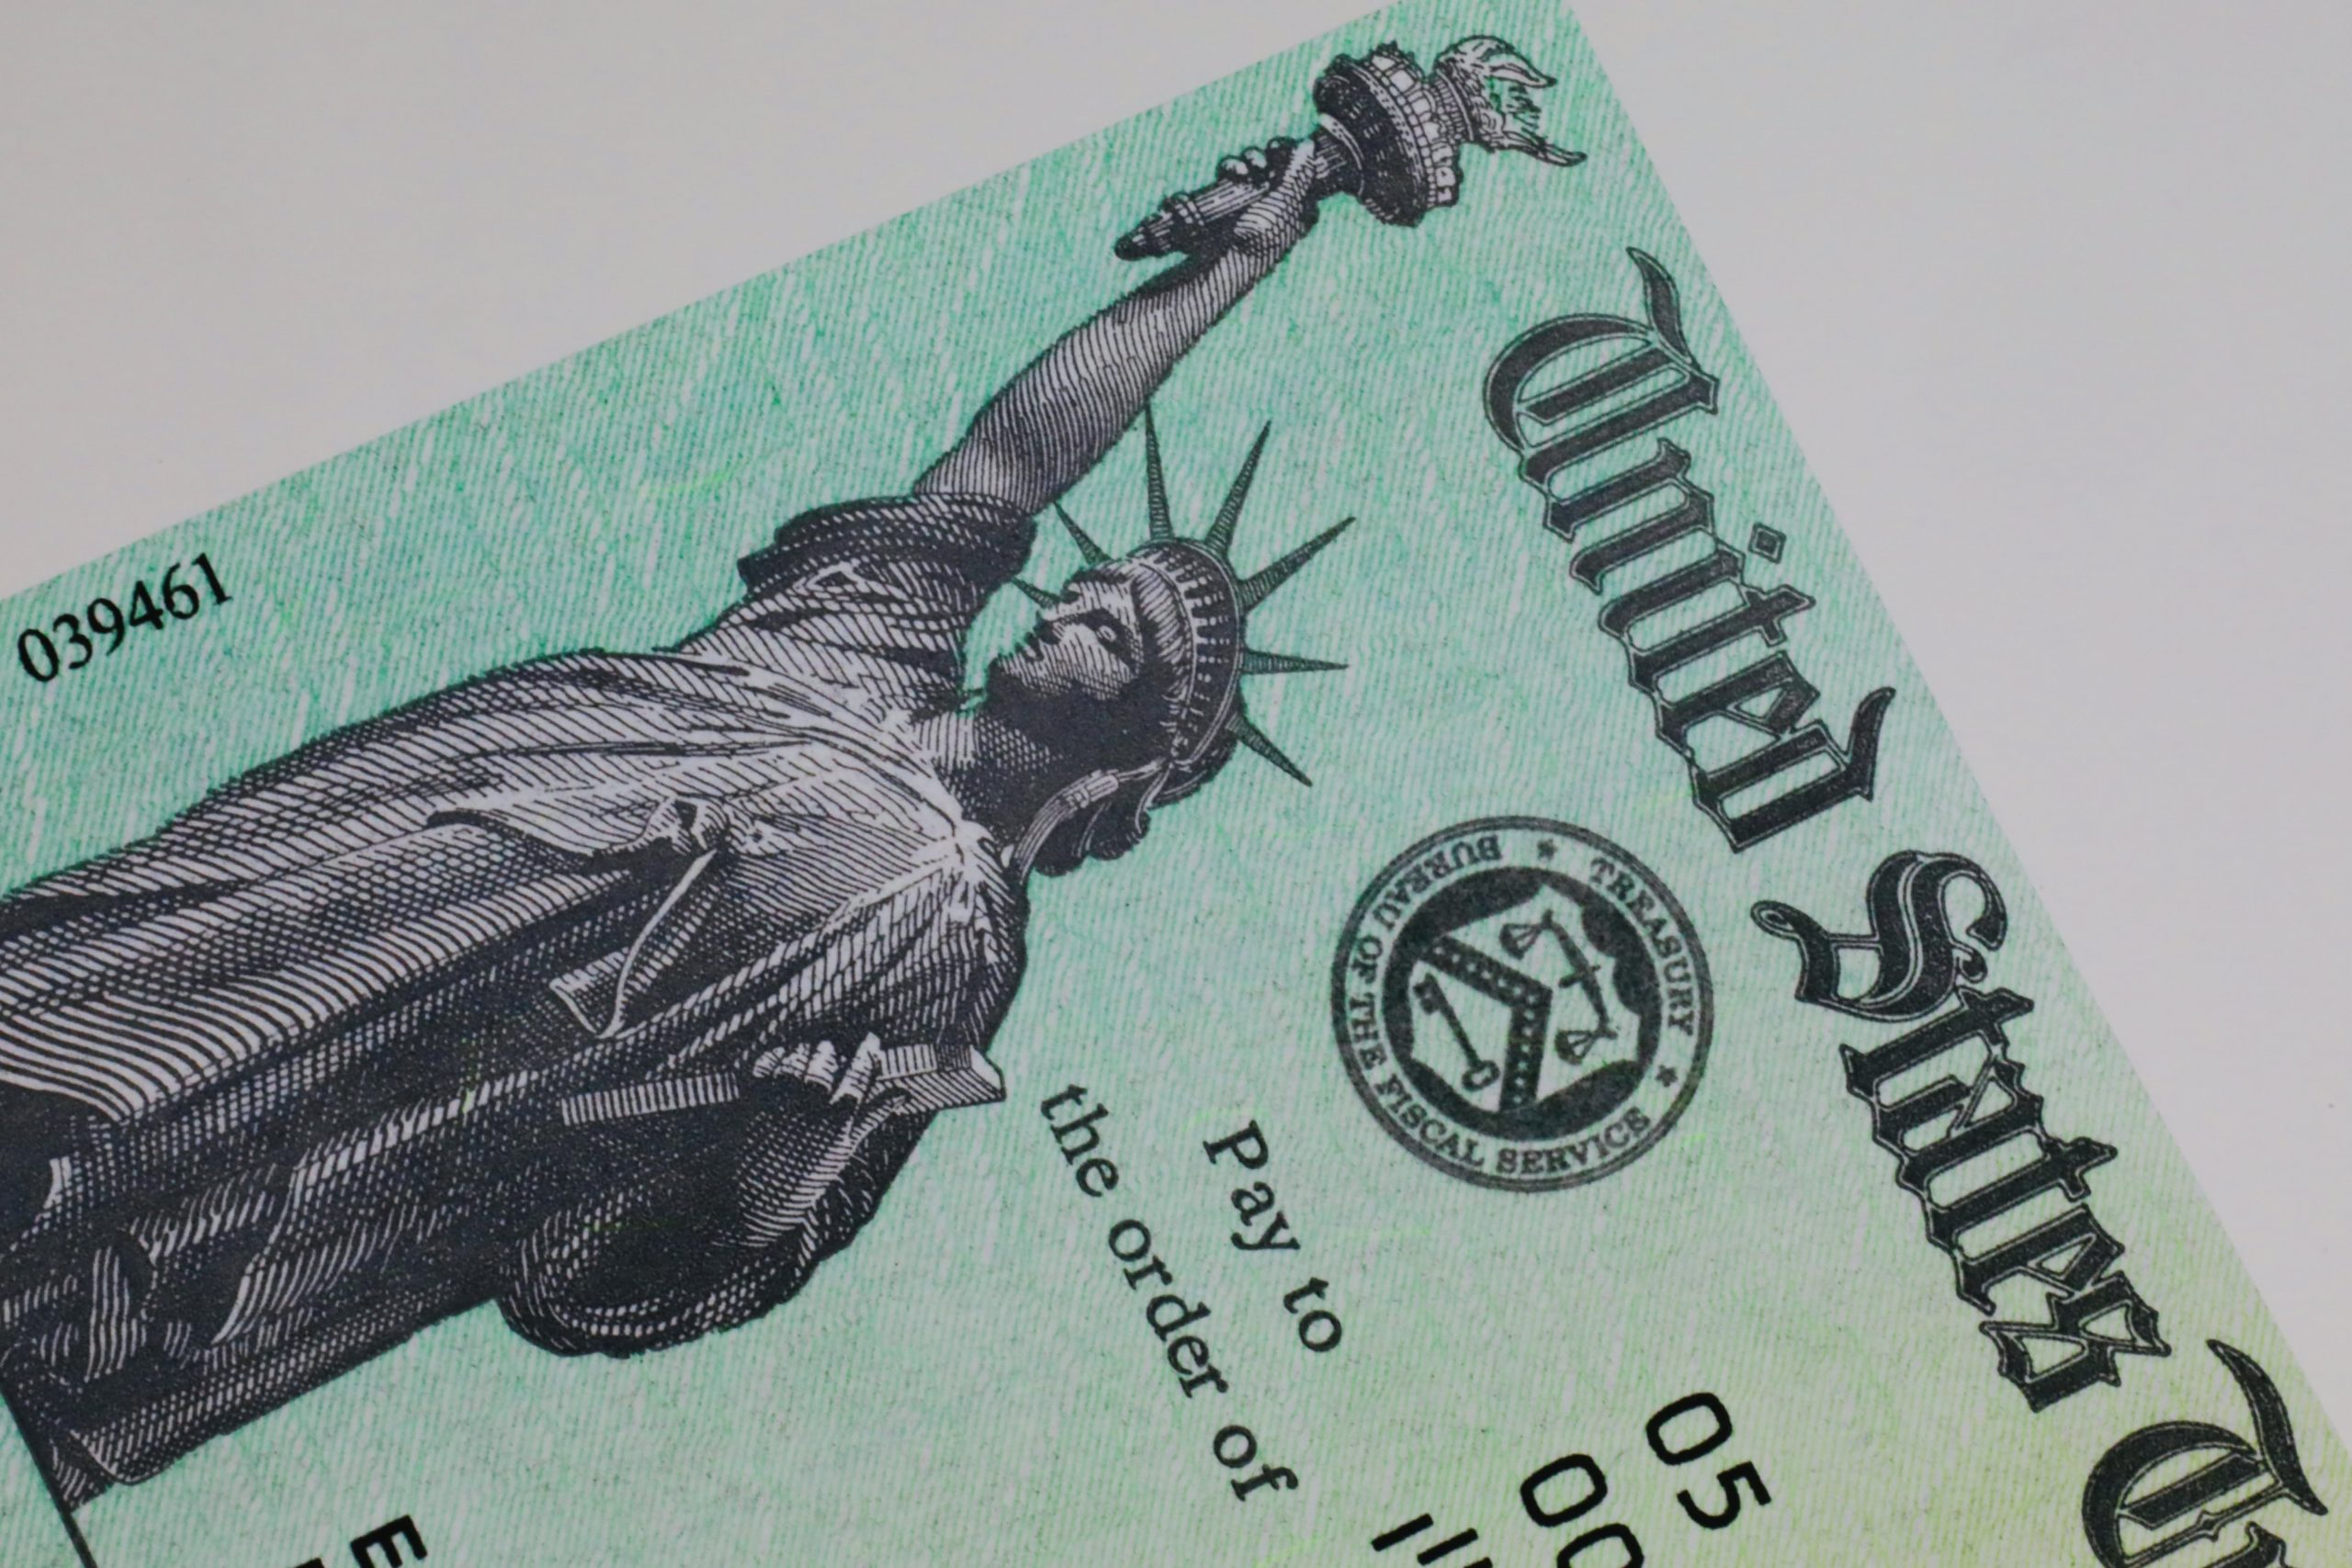 60,000 stimulus checks sent to dead people have been returned, Treasury says